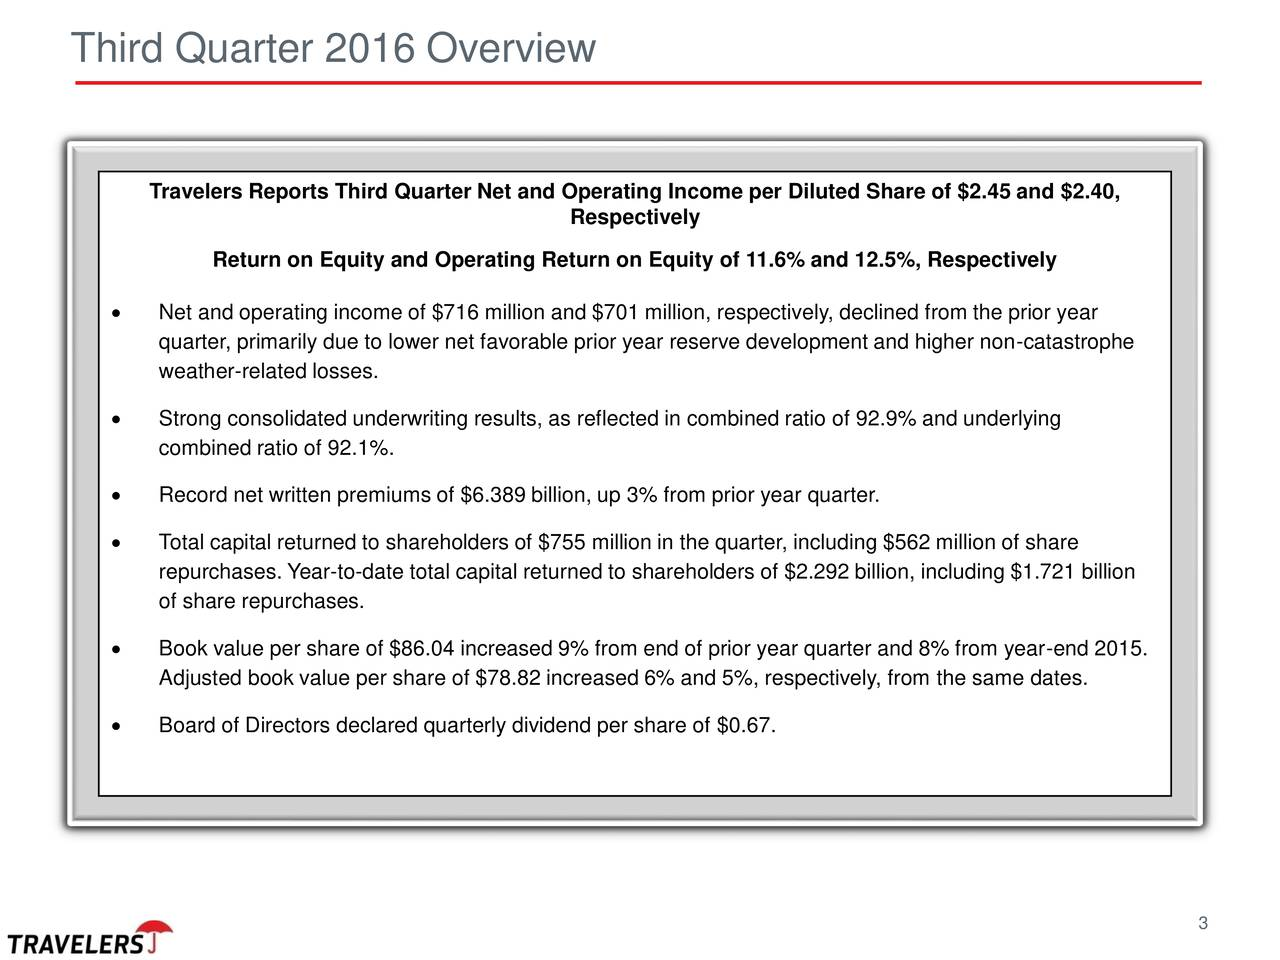 Travelers Reports Third Quarter Net and Operating Income per Diluted Share of $2.45 and $2.40, Respectively Return on Equity and Operating Return on Equity of 11.6% and 12.5%, Respectively Net and operating income of $716 million and $701 million, respectively, declined from the prior year quarter, primarily due to lower net favorable prior year reserve development and higher non-catastrophe weather-related losses. Strong consolidated underwriting results, as reflected in combined ratio of 92.9% and underlying combined ratio of 92.1%. Record net written premiums of $6.389 billion, up 3% from prior year quarter. Total capital returned to shareholders of $755 million in the quarter, including $562 million of share repurchases. Year-to-date total capital returned to shareholders of $2.292 billion, including $1.721 billion of share repurchases. Book value per share of $86.04 increased 9% from end of prior year quarter and 8% from year-end 2015. Adjusted book value per share of $78.82 increased 6% and 5%, respectively, from the same dates. Board of Directors declared quarterly dividend per share of $0.67. 3